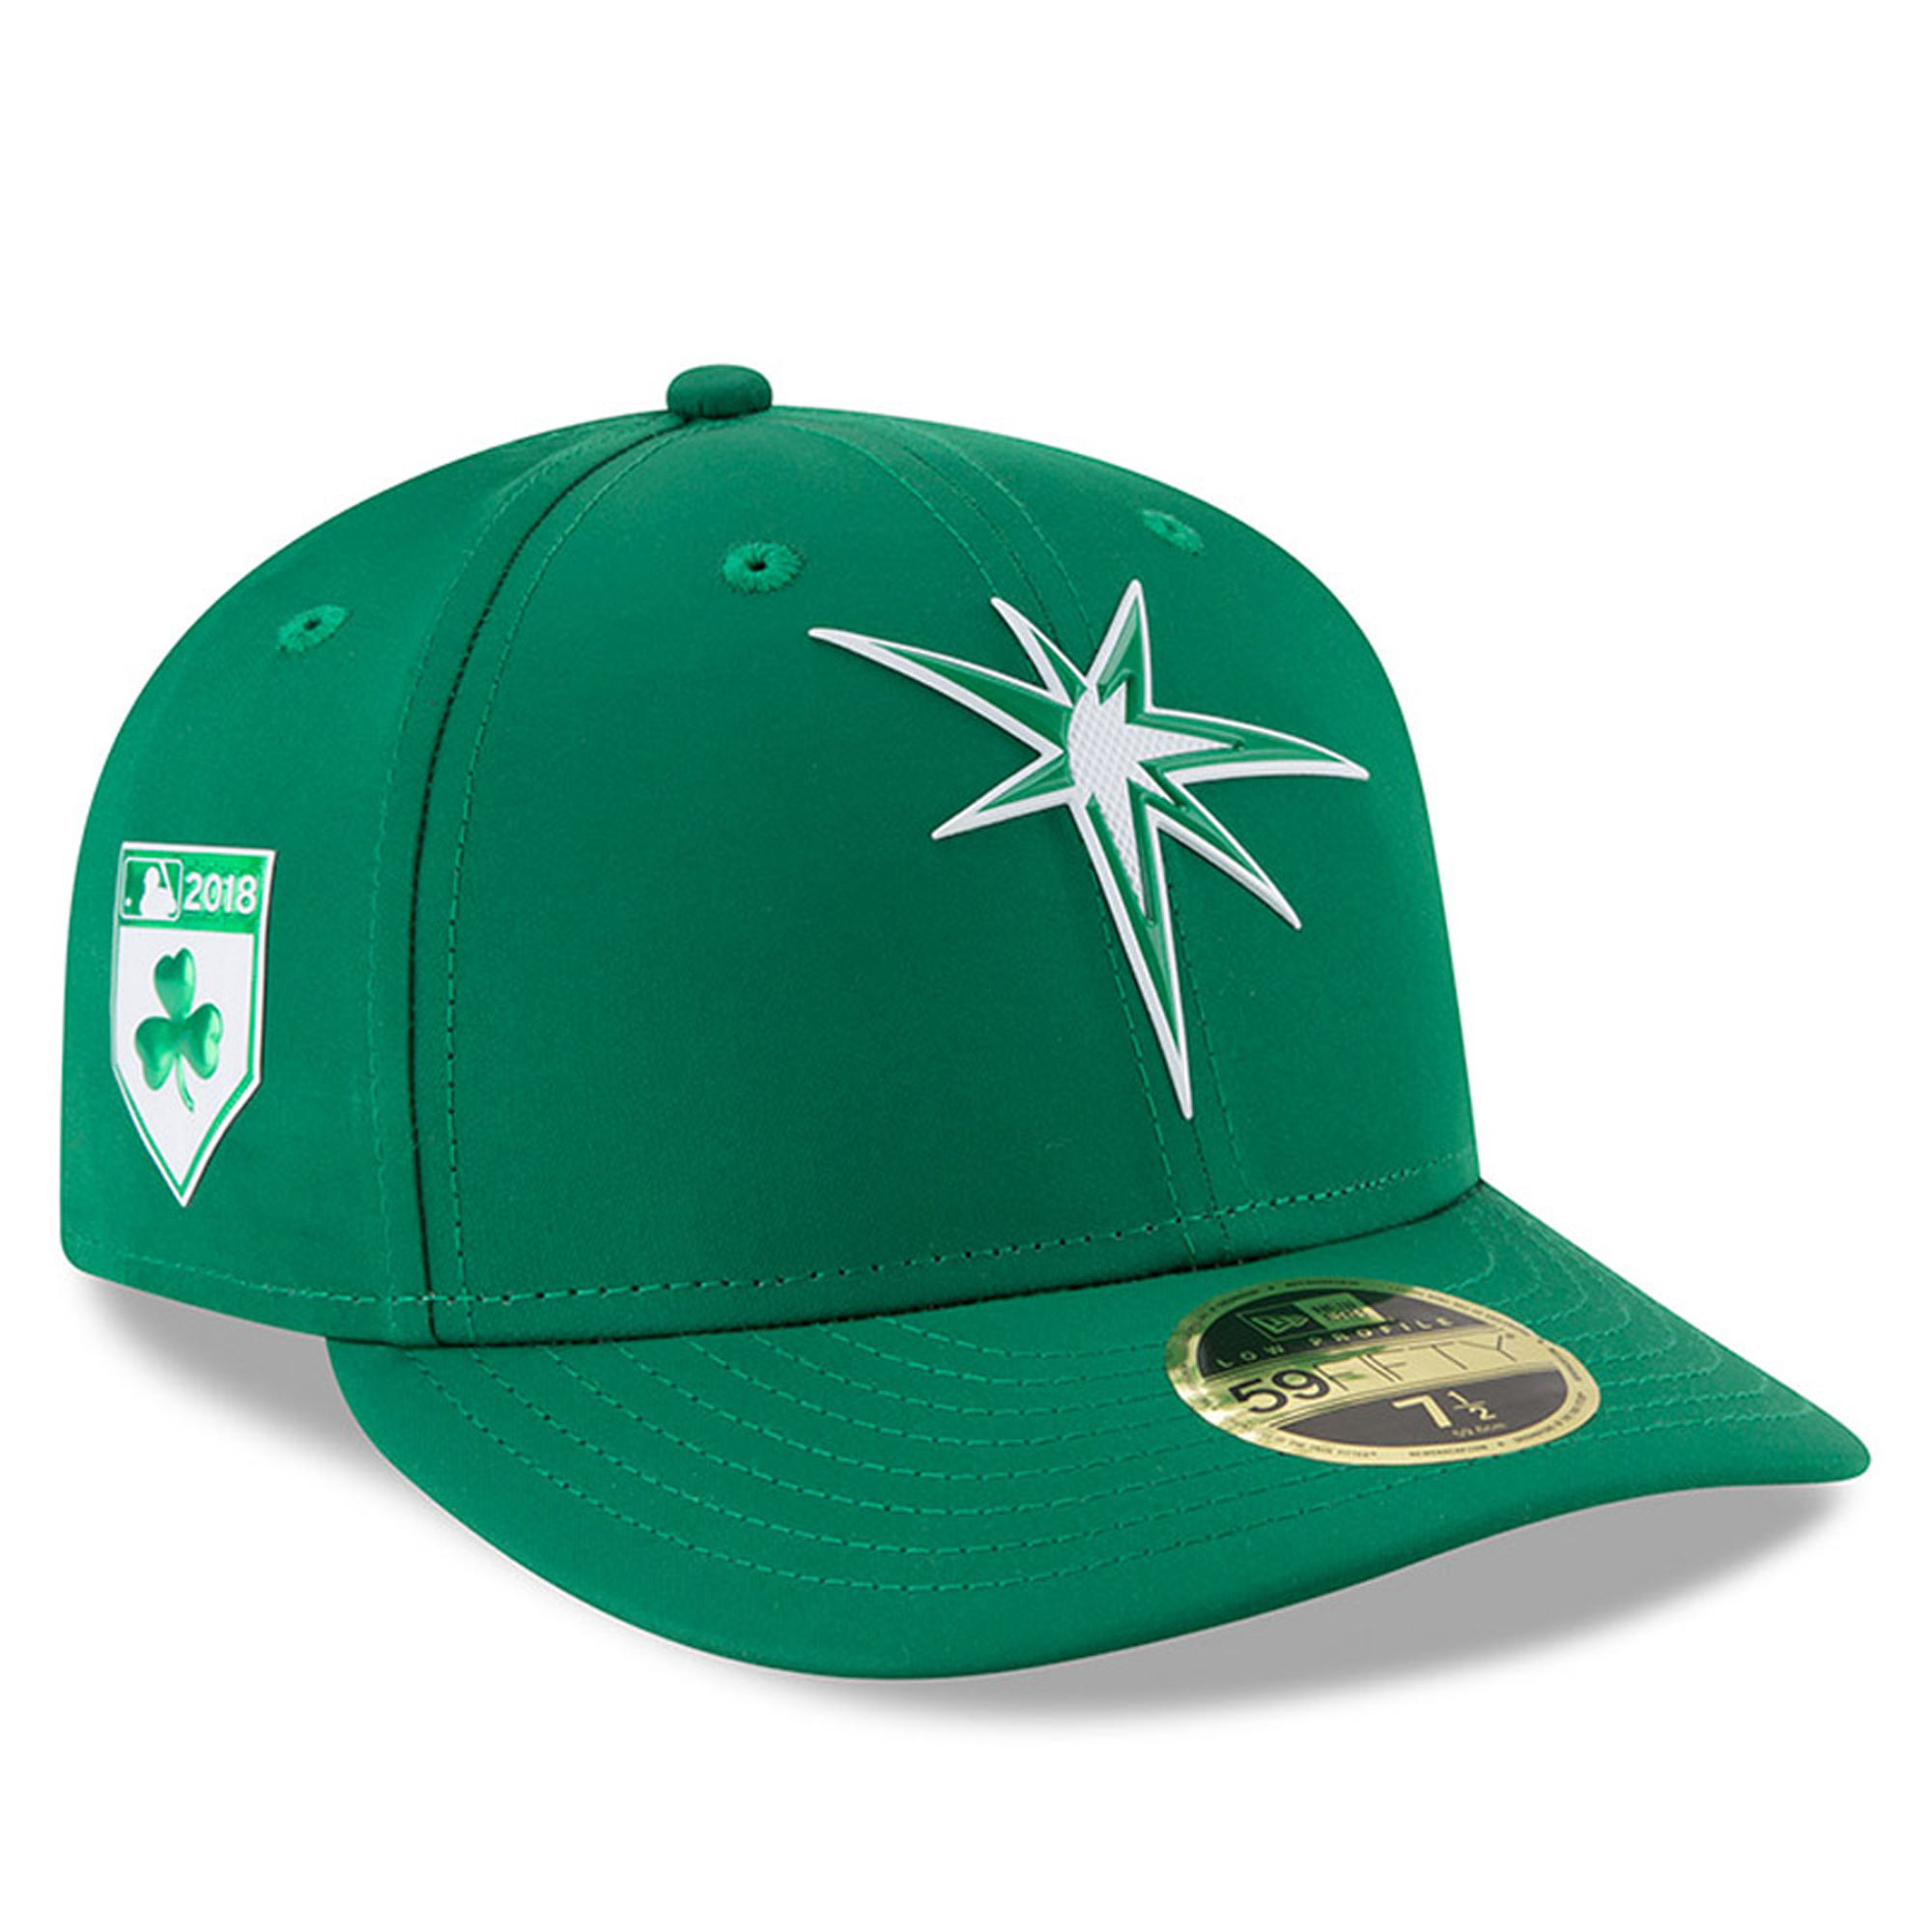 Tampa Bay Rays New Era 2018 St. Patrick's Day Prolight Low Profile 59FIFTY Fitted Hat - Green